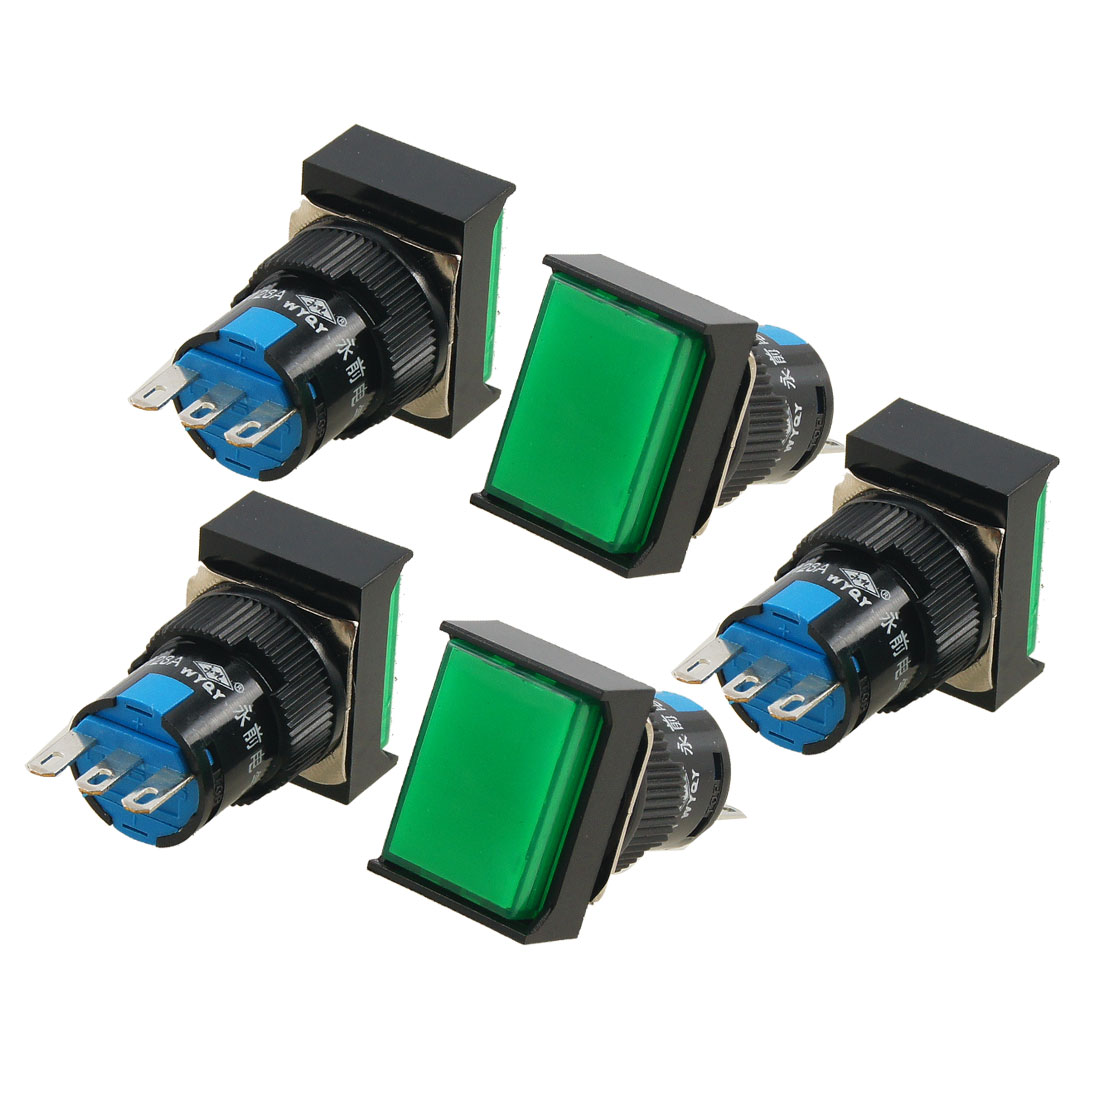 5x-Momentary-Green-Rectangle-Cap-SPDT-Push-Button-Switch-AC-250V-5A